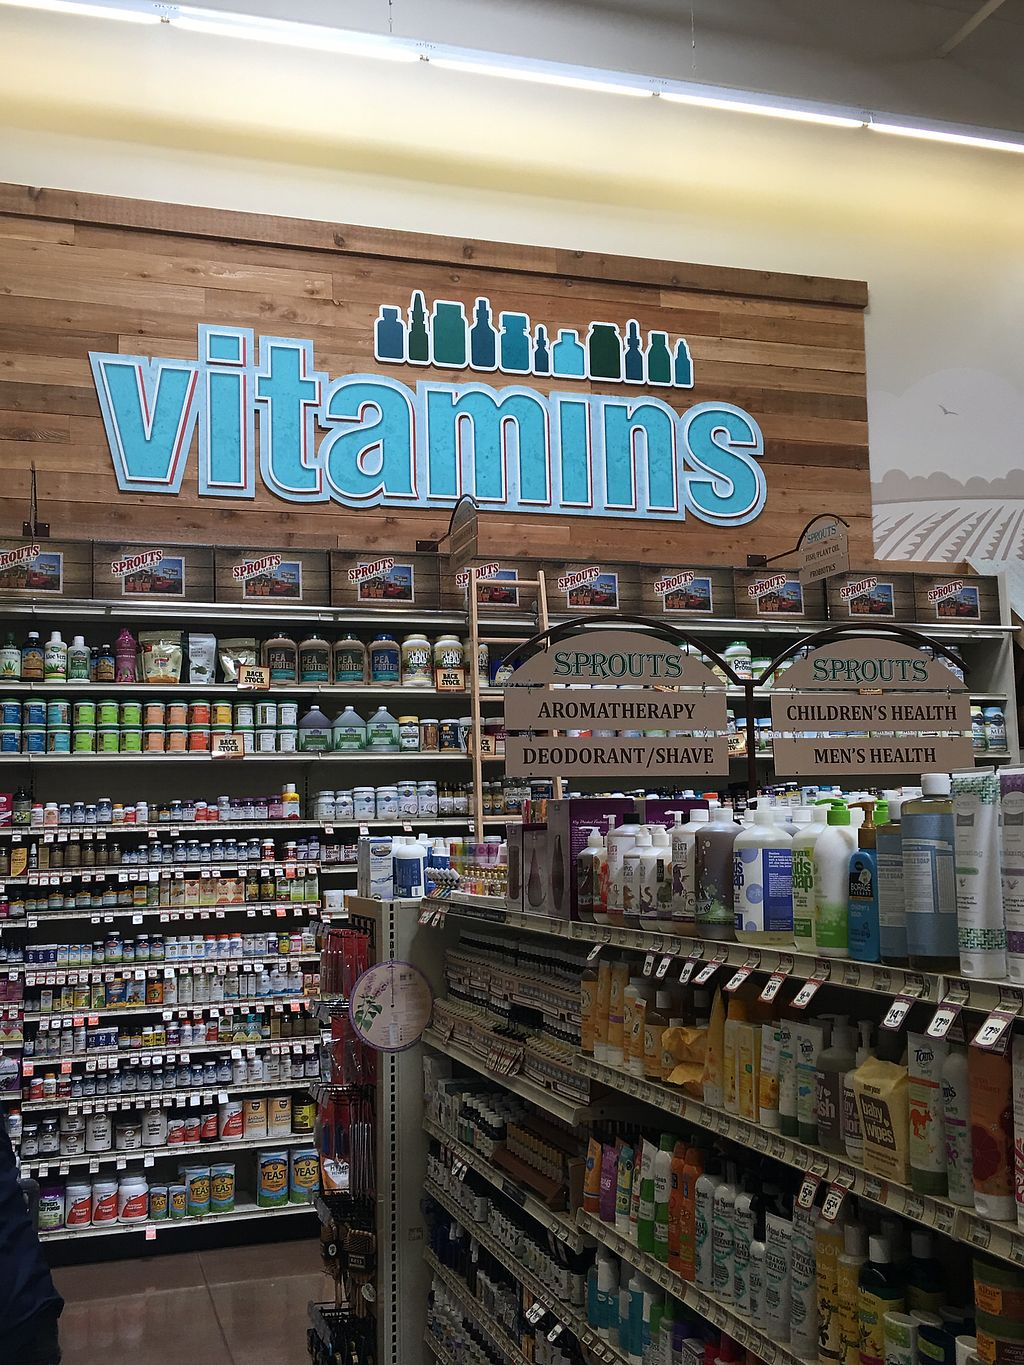 """Photo of Sprouts Farmers Market  by <a href=""""/members/profile/HeatherArmstrong"""">HeatherArmstrong</a> <br/>Health and Beauty  <br/> October 15, 2017  - <a href='/contact/abuse/image/101964/315625'>Report</a>"""